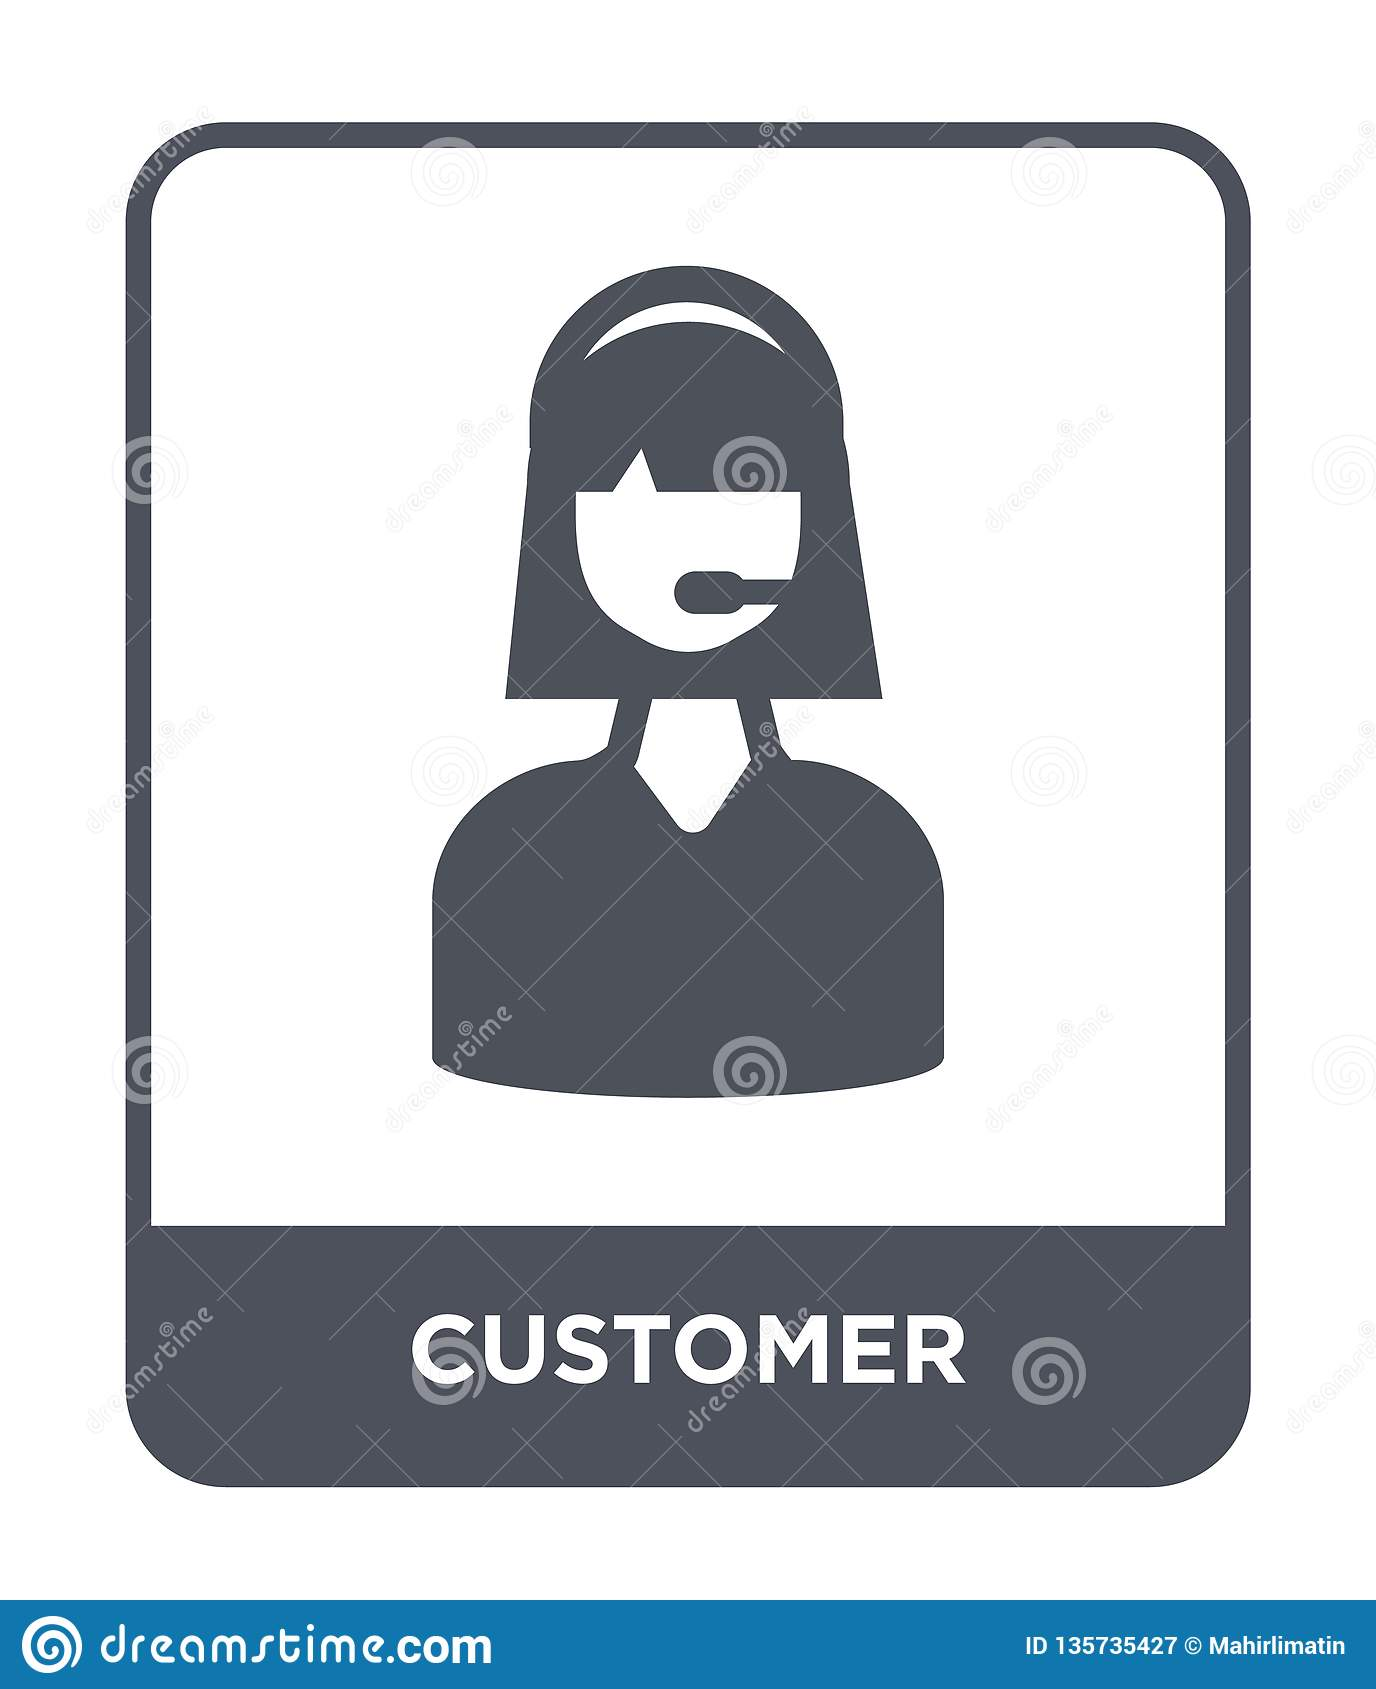 customer icon in trendy design style. customer icon isolated on white background. customer vector icon simple and modern flat